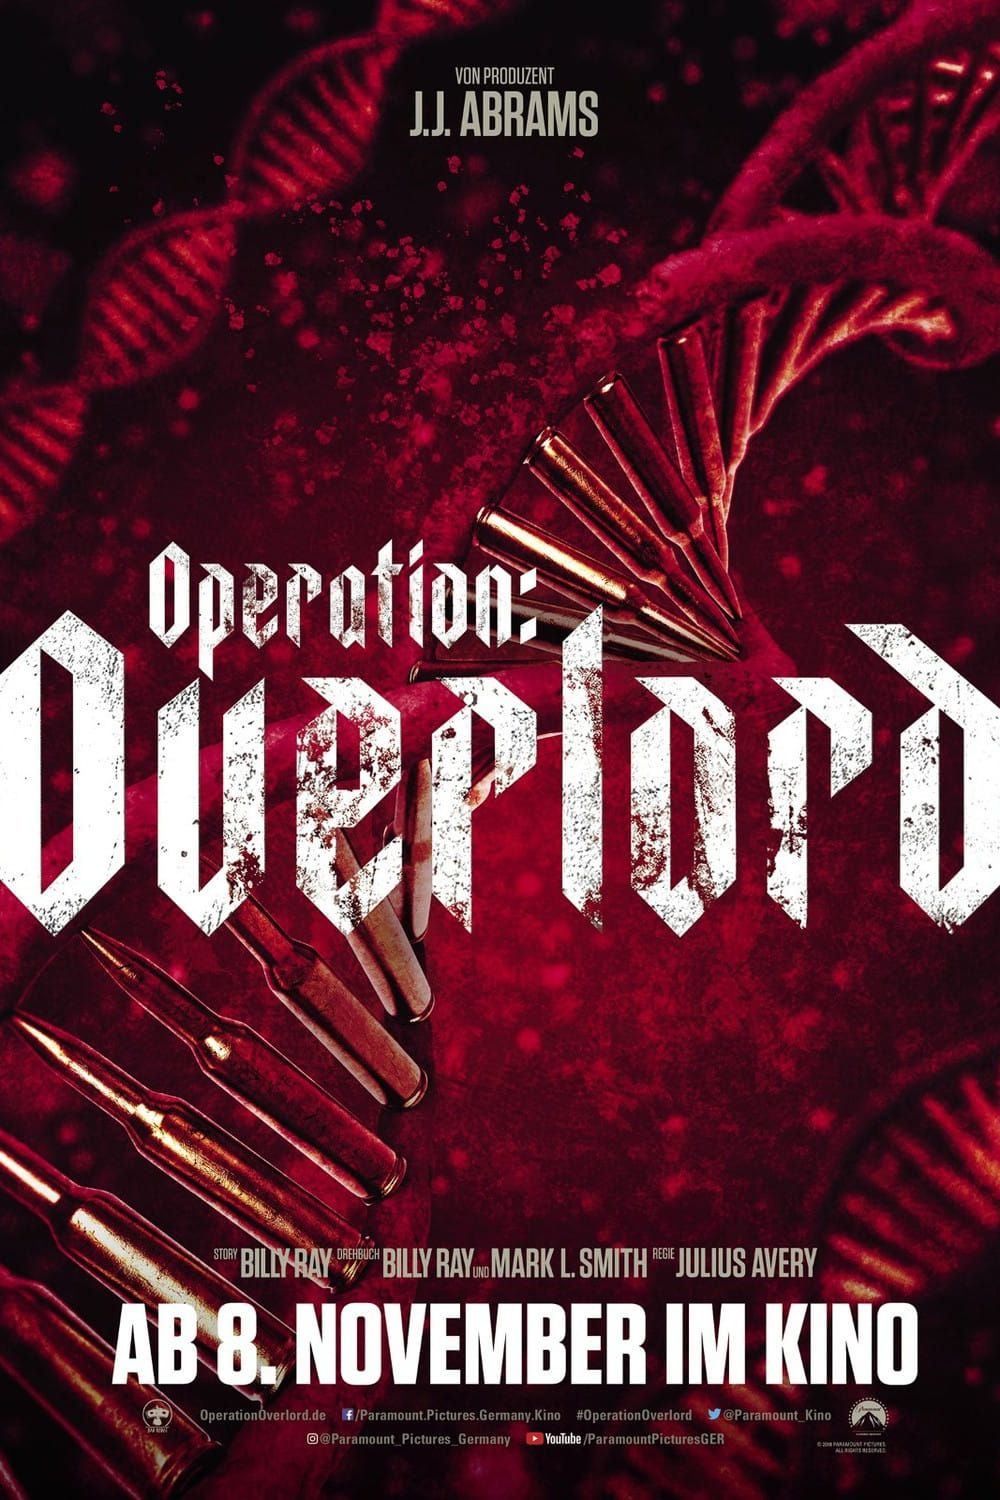 Overlord Streaming Vf Complet En Ligne Gratuite Streaming Vf Movie Posters Full Movies Tv Spot